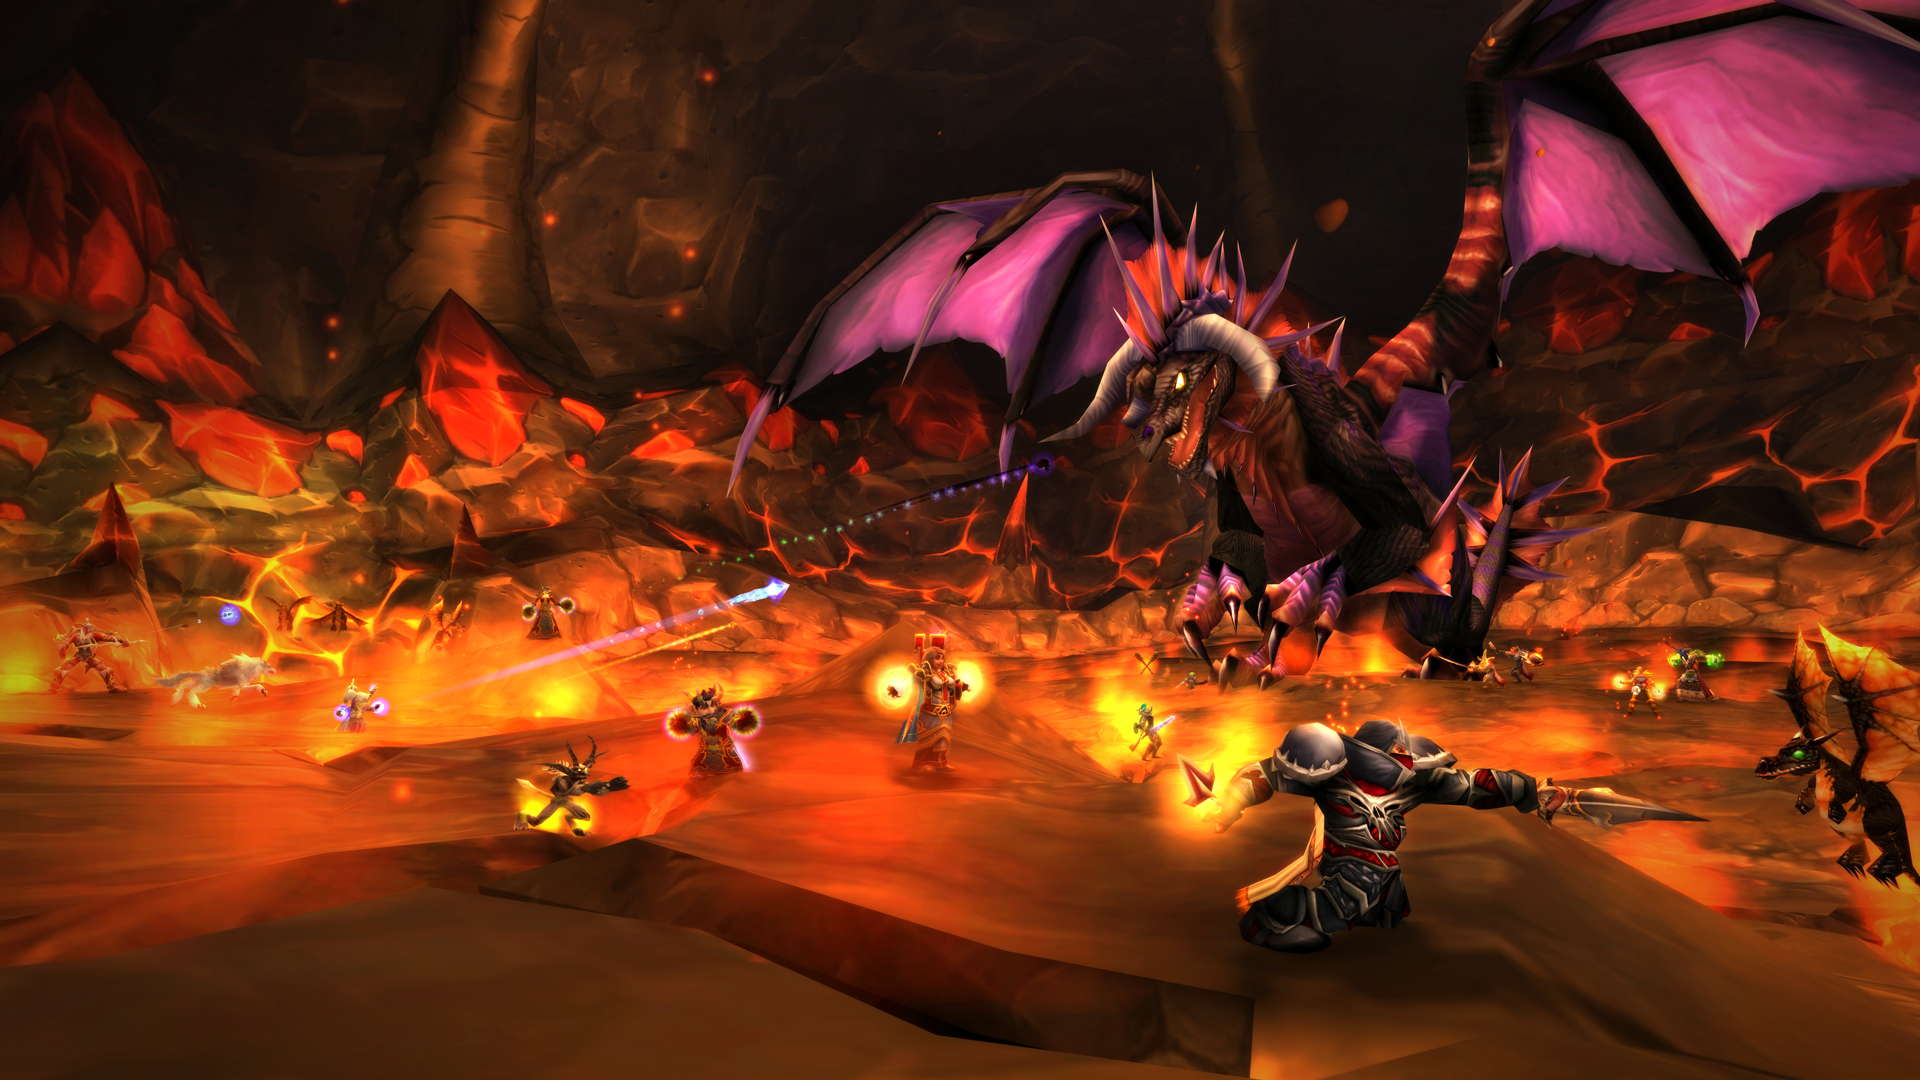 World of Warcraft is hearthing back home again with Classic